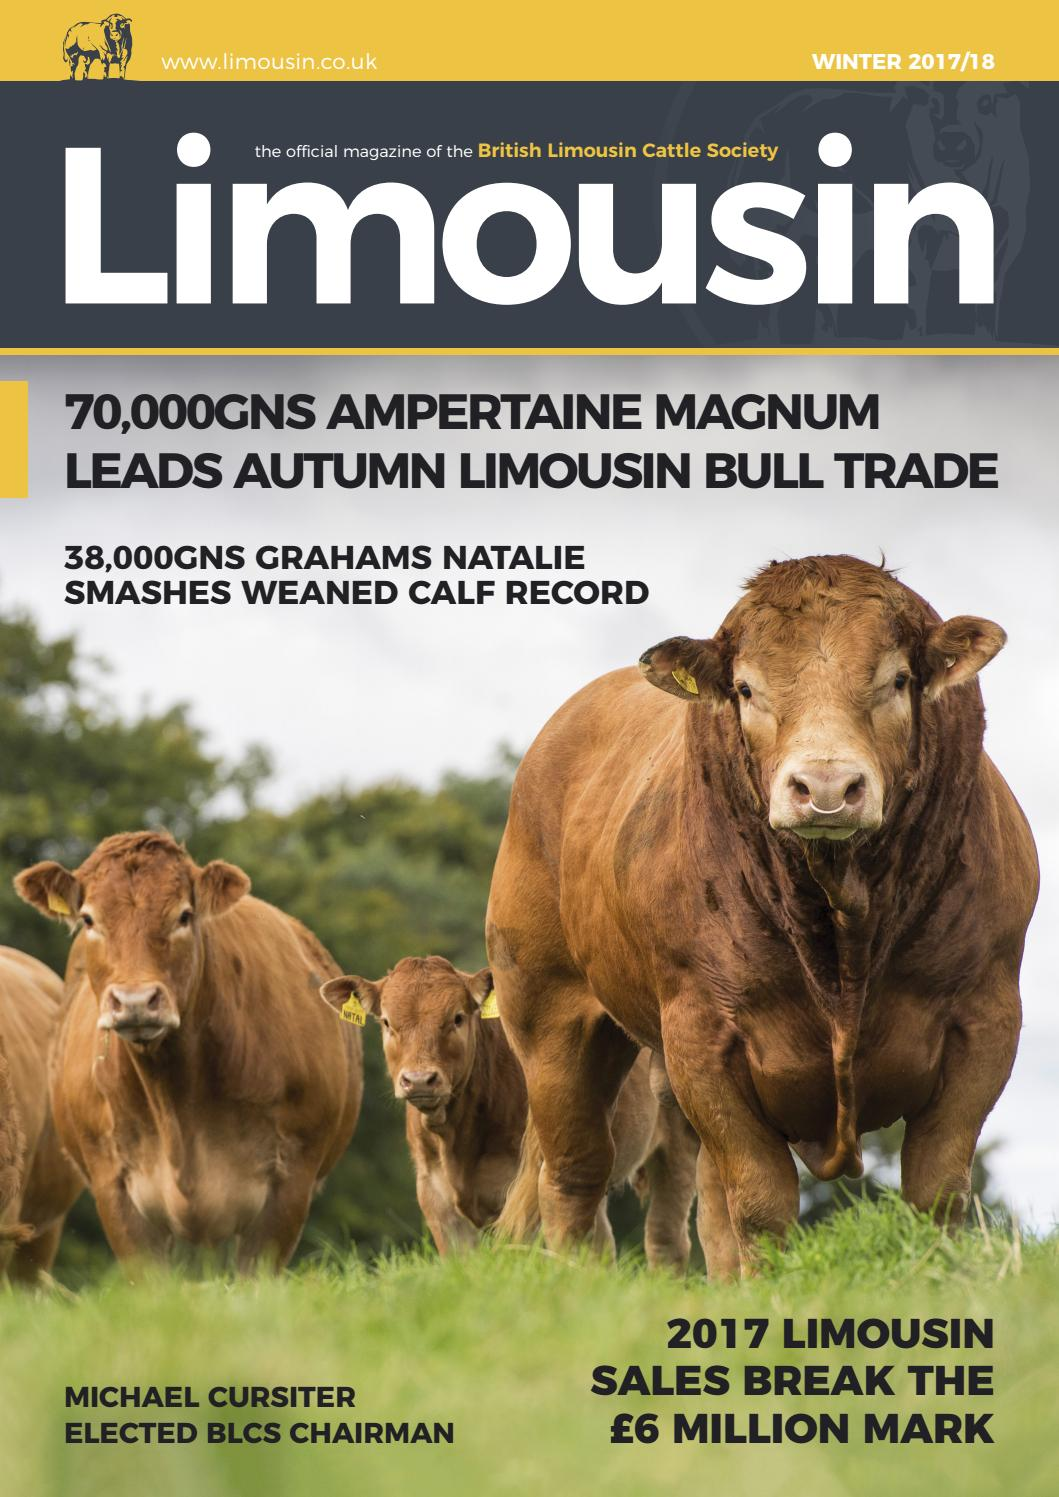 Winter 2017 BLCS Magazine by British Limousin Cattle Society - issuu